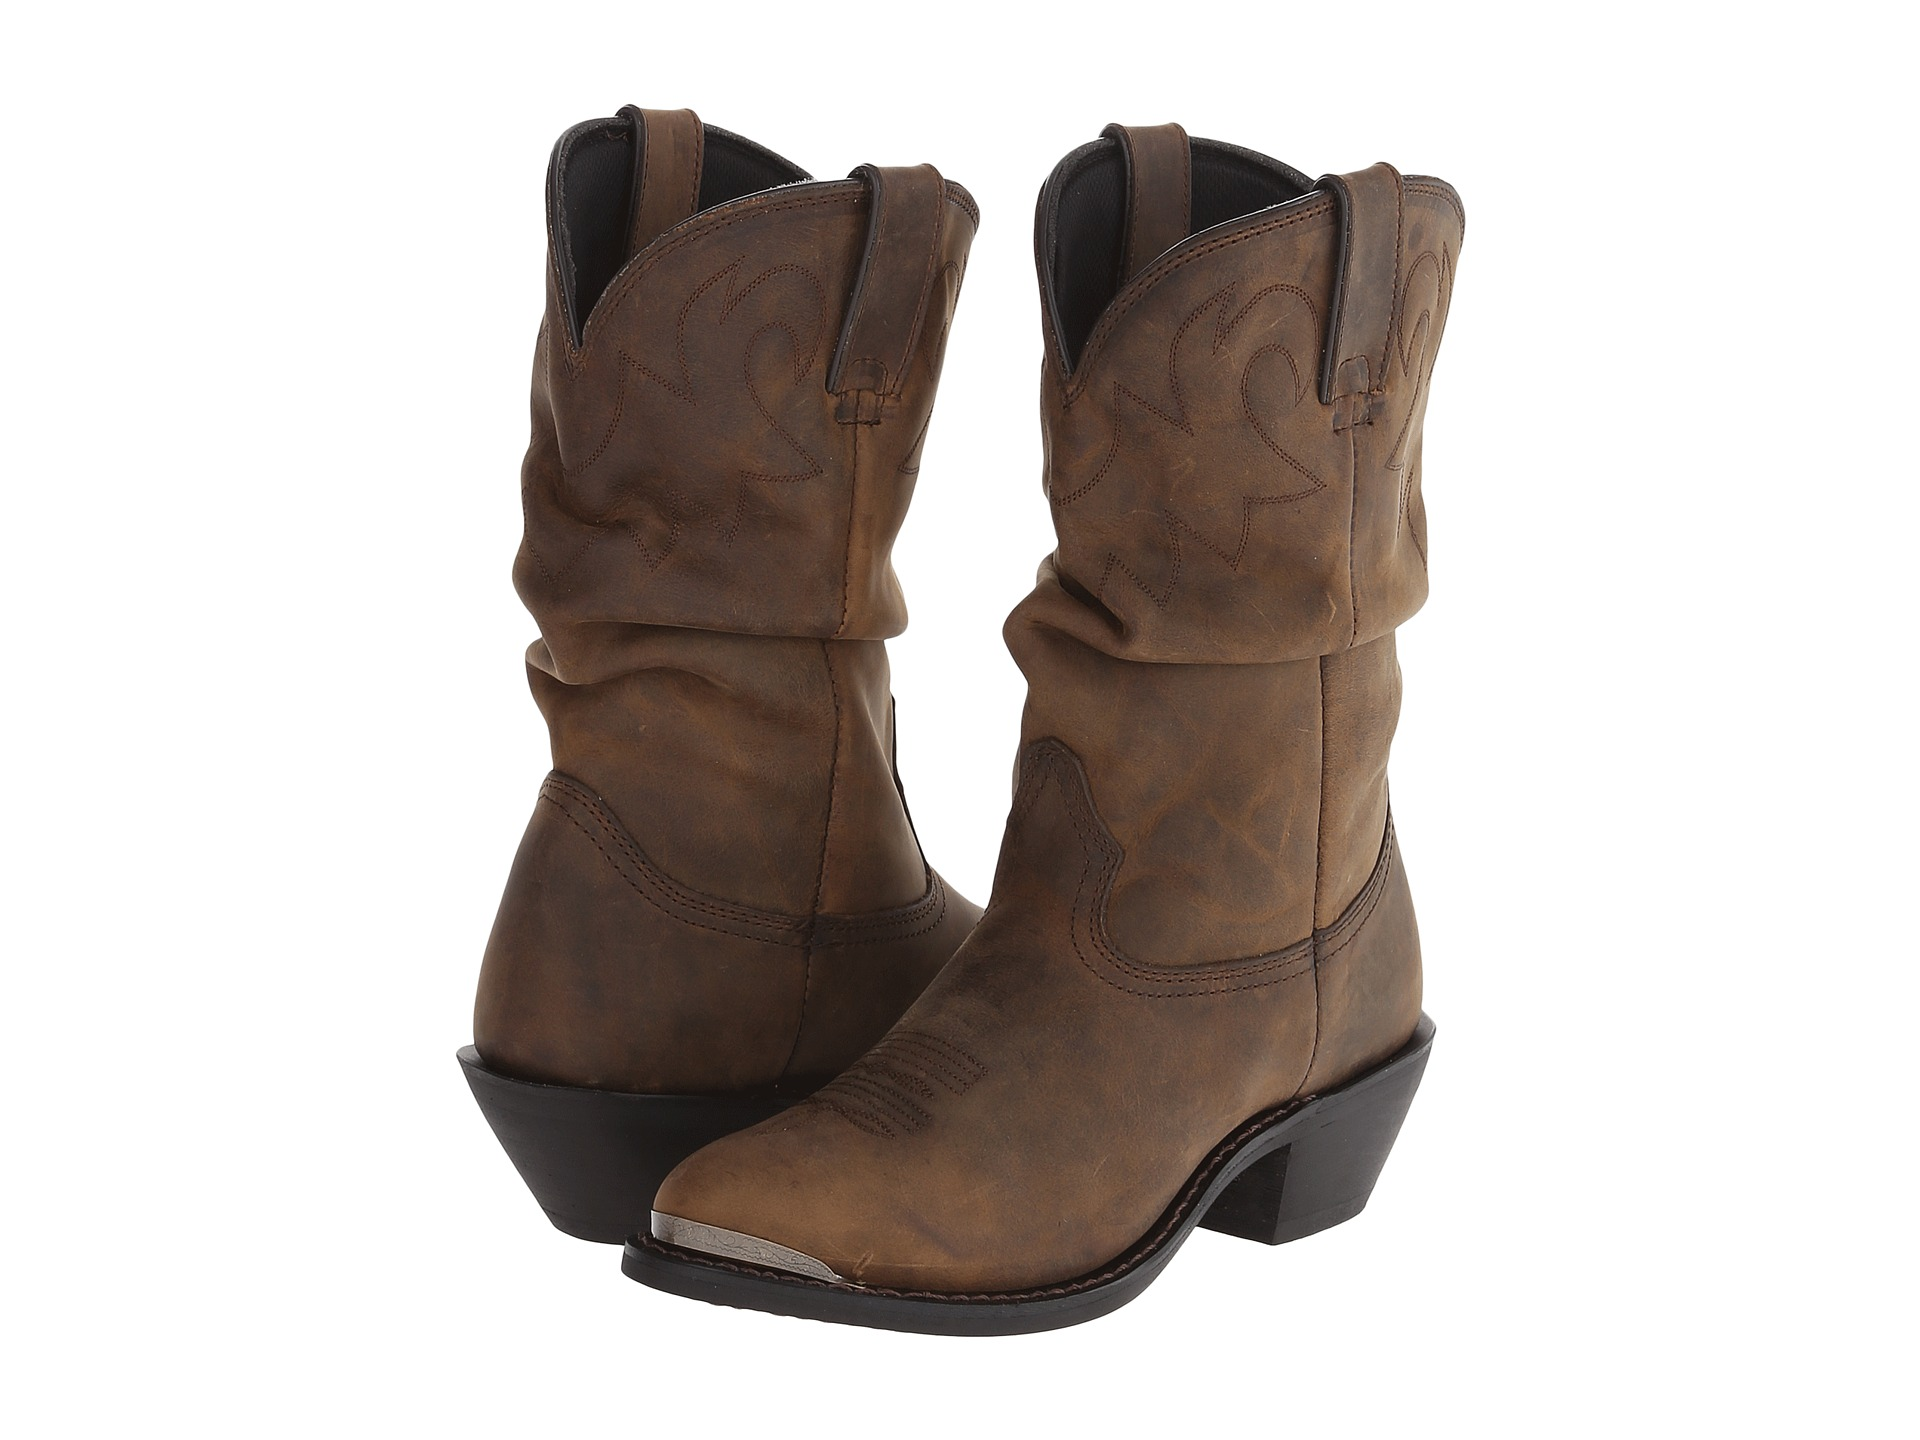 "Durango 11"" Slouch Boot - Zappos.com Free Shipping BOTH Ways"